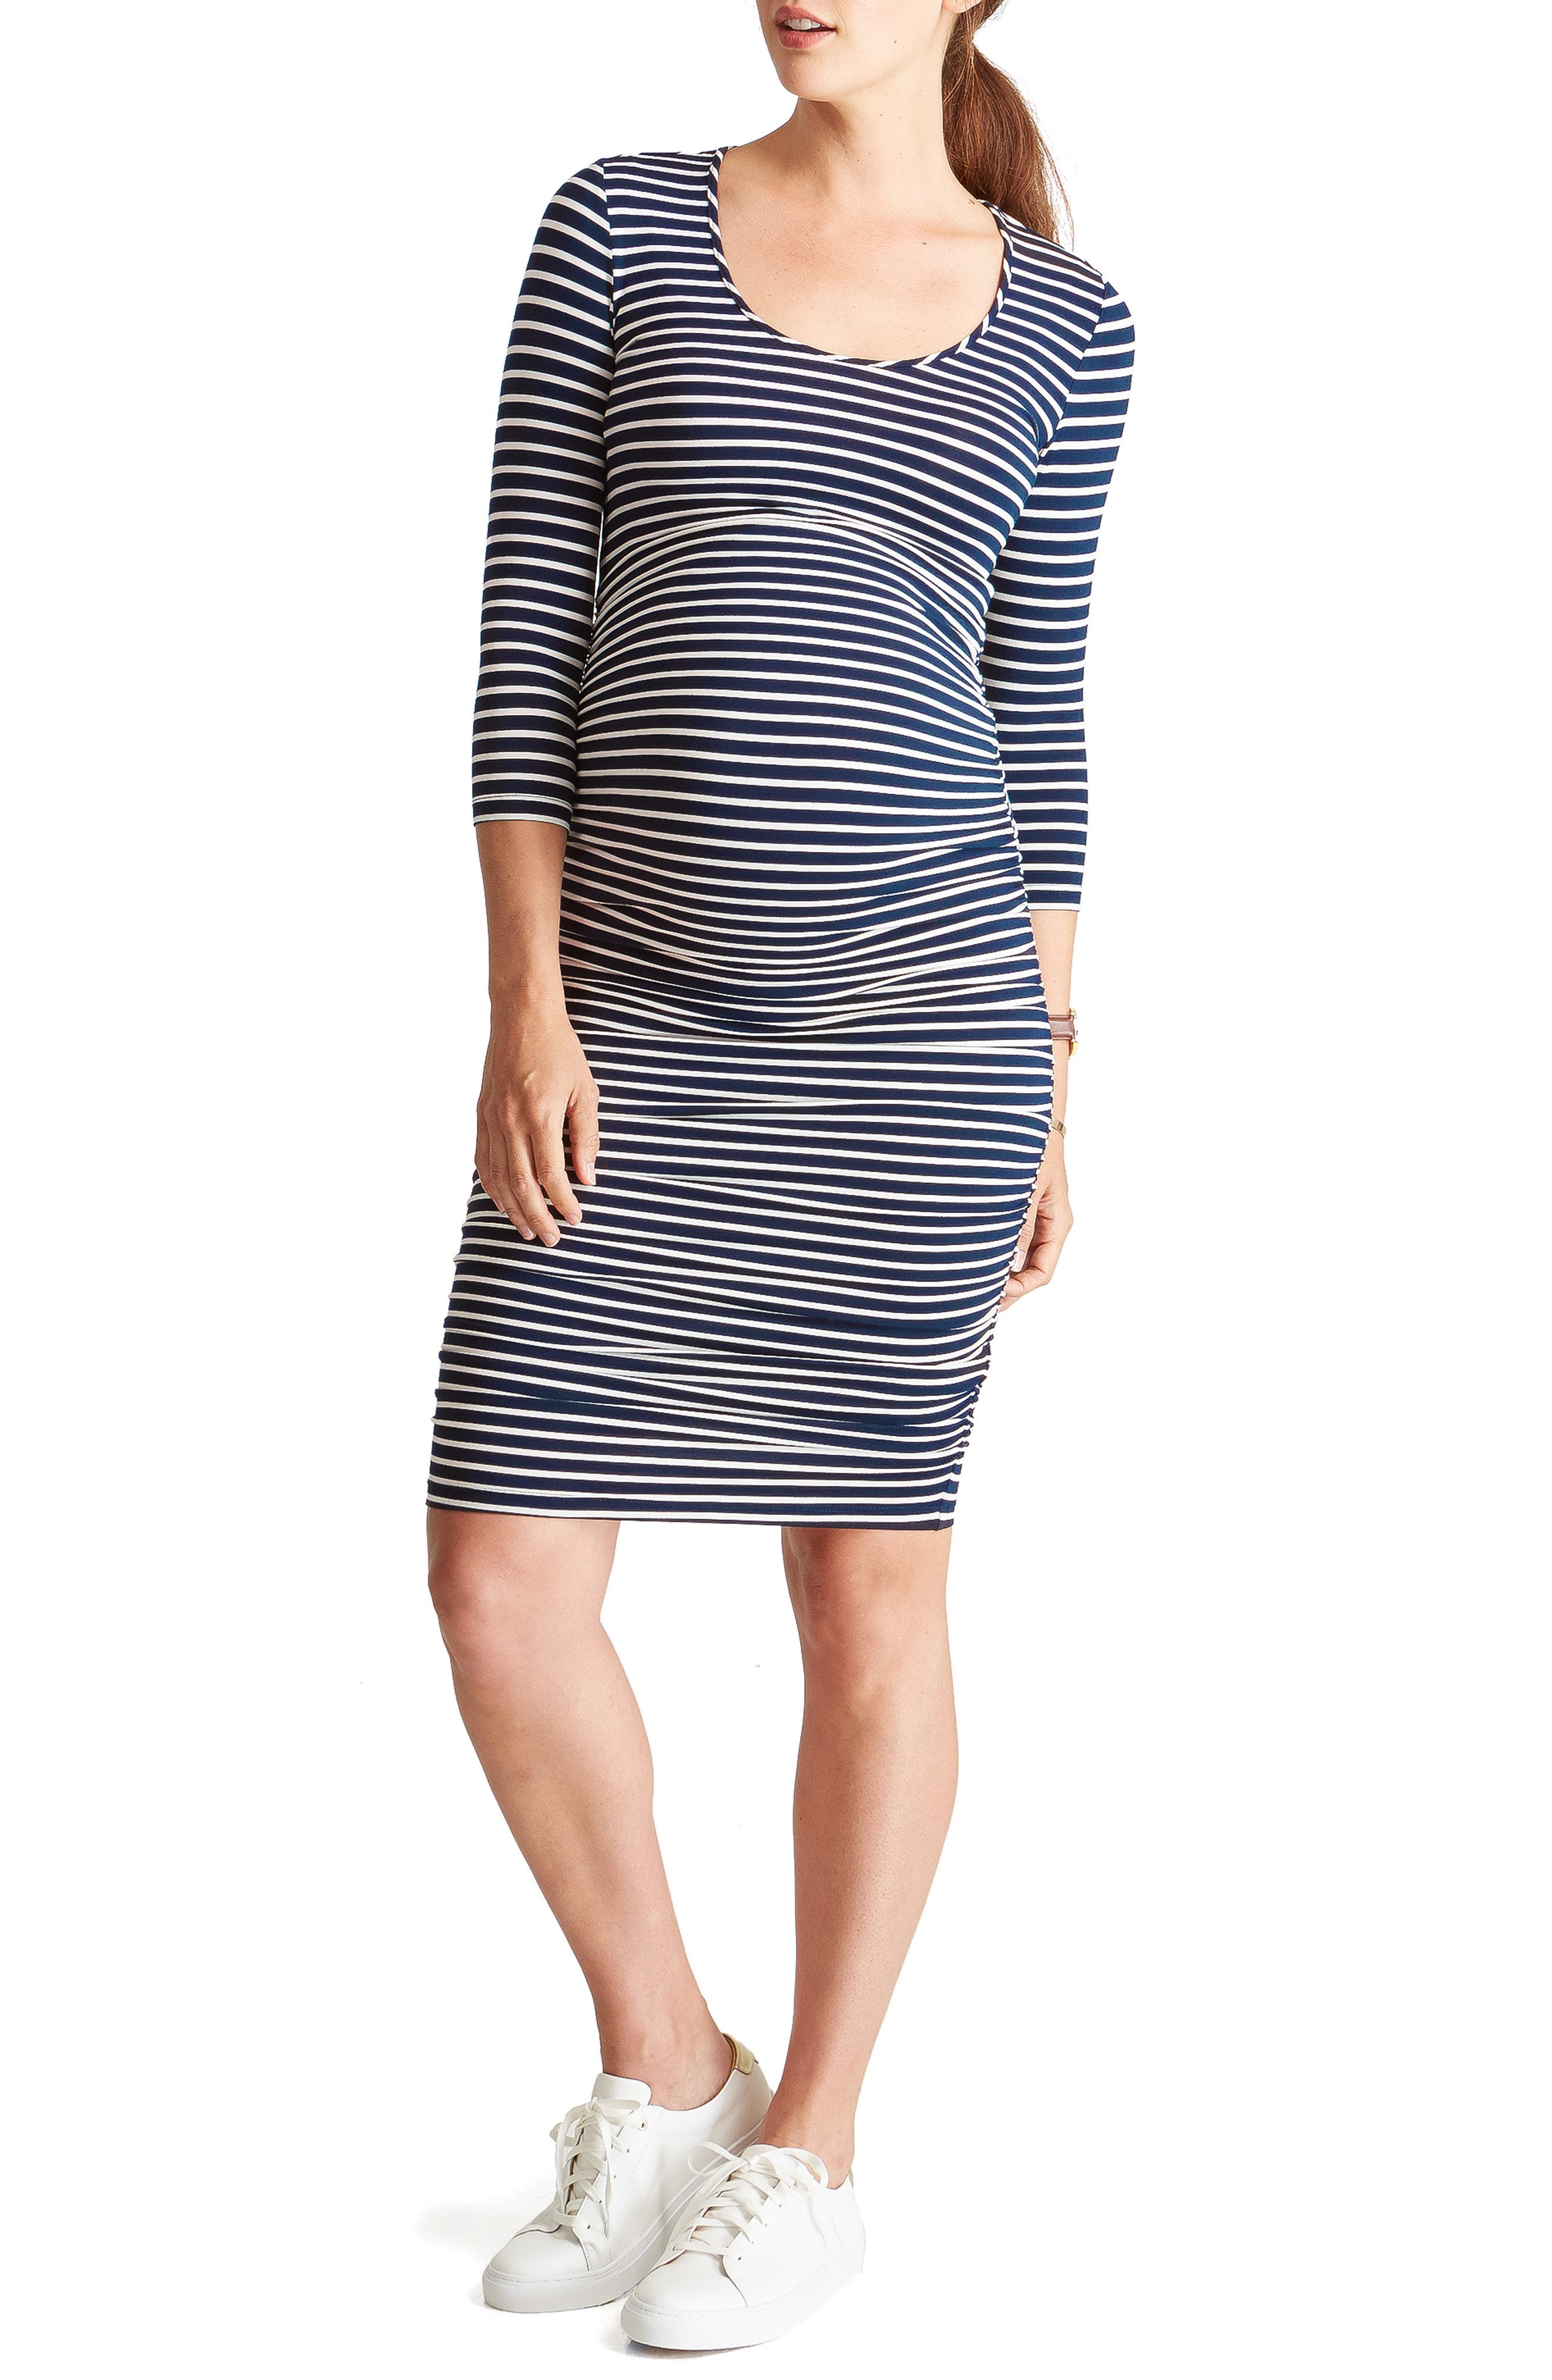 Ingrid & Isabel Shirred Maternity Dress,                             Main thumbnail 1, color,                             TRUE NAVY/CREAM STRIPE